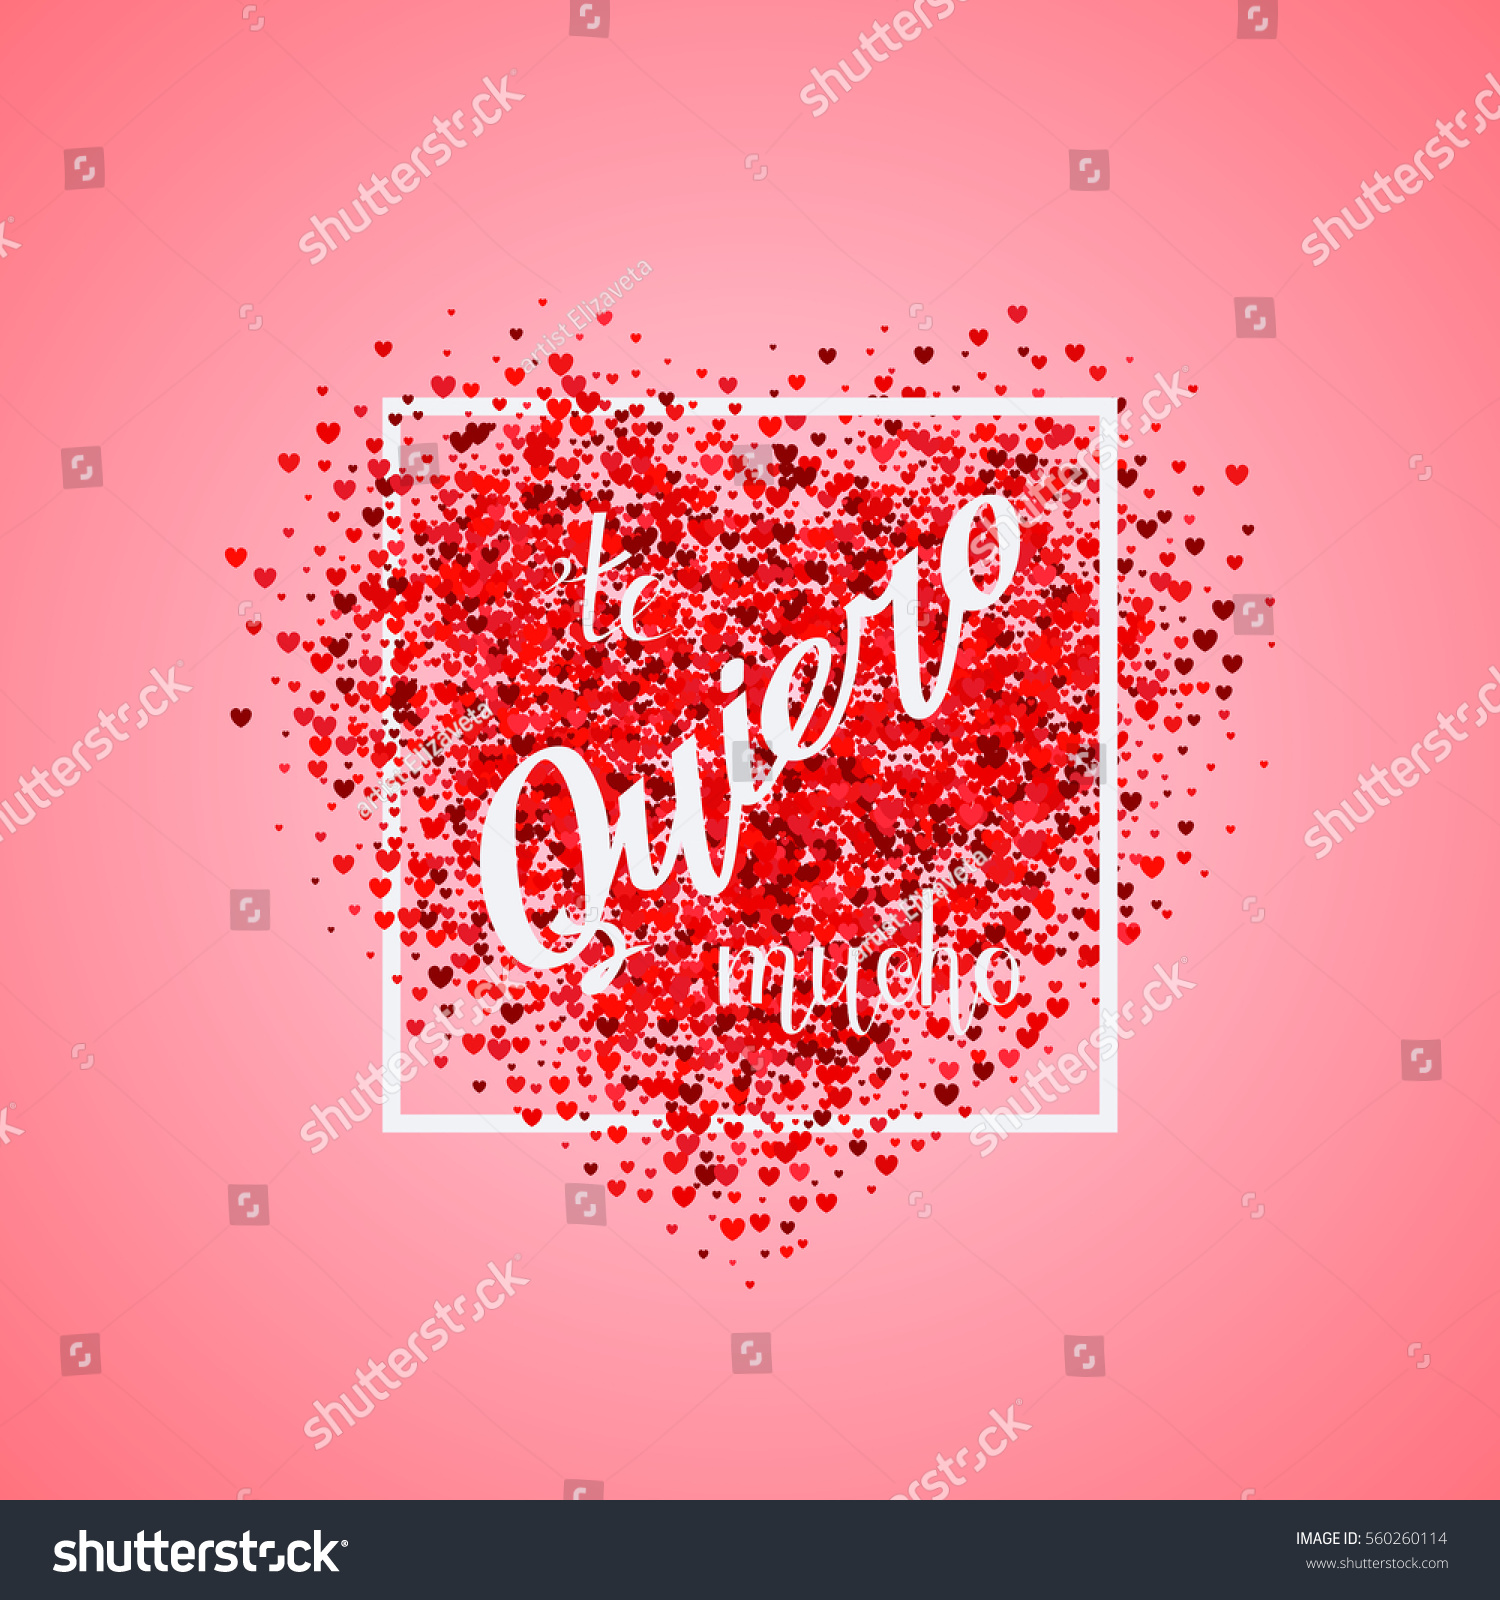 Valentines Day Card Confetti Red Heart Stock Vector (Royalty Free ...